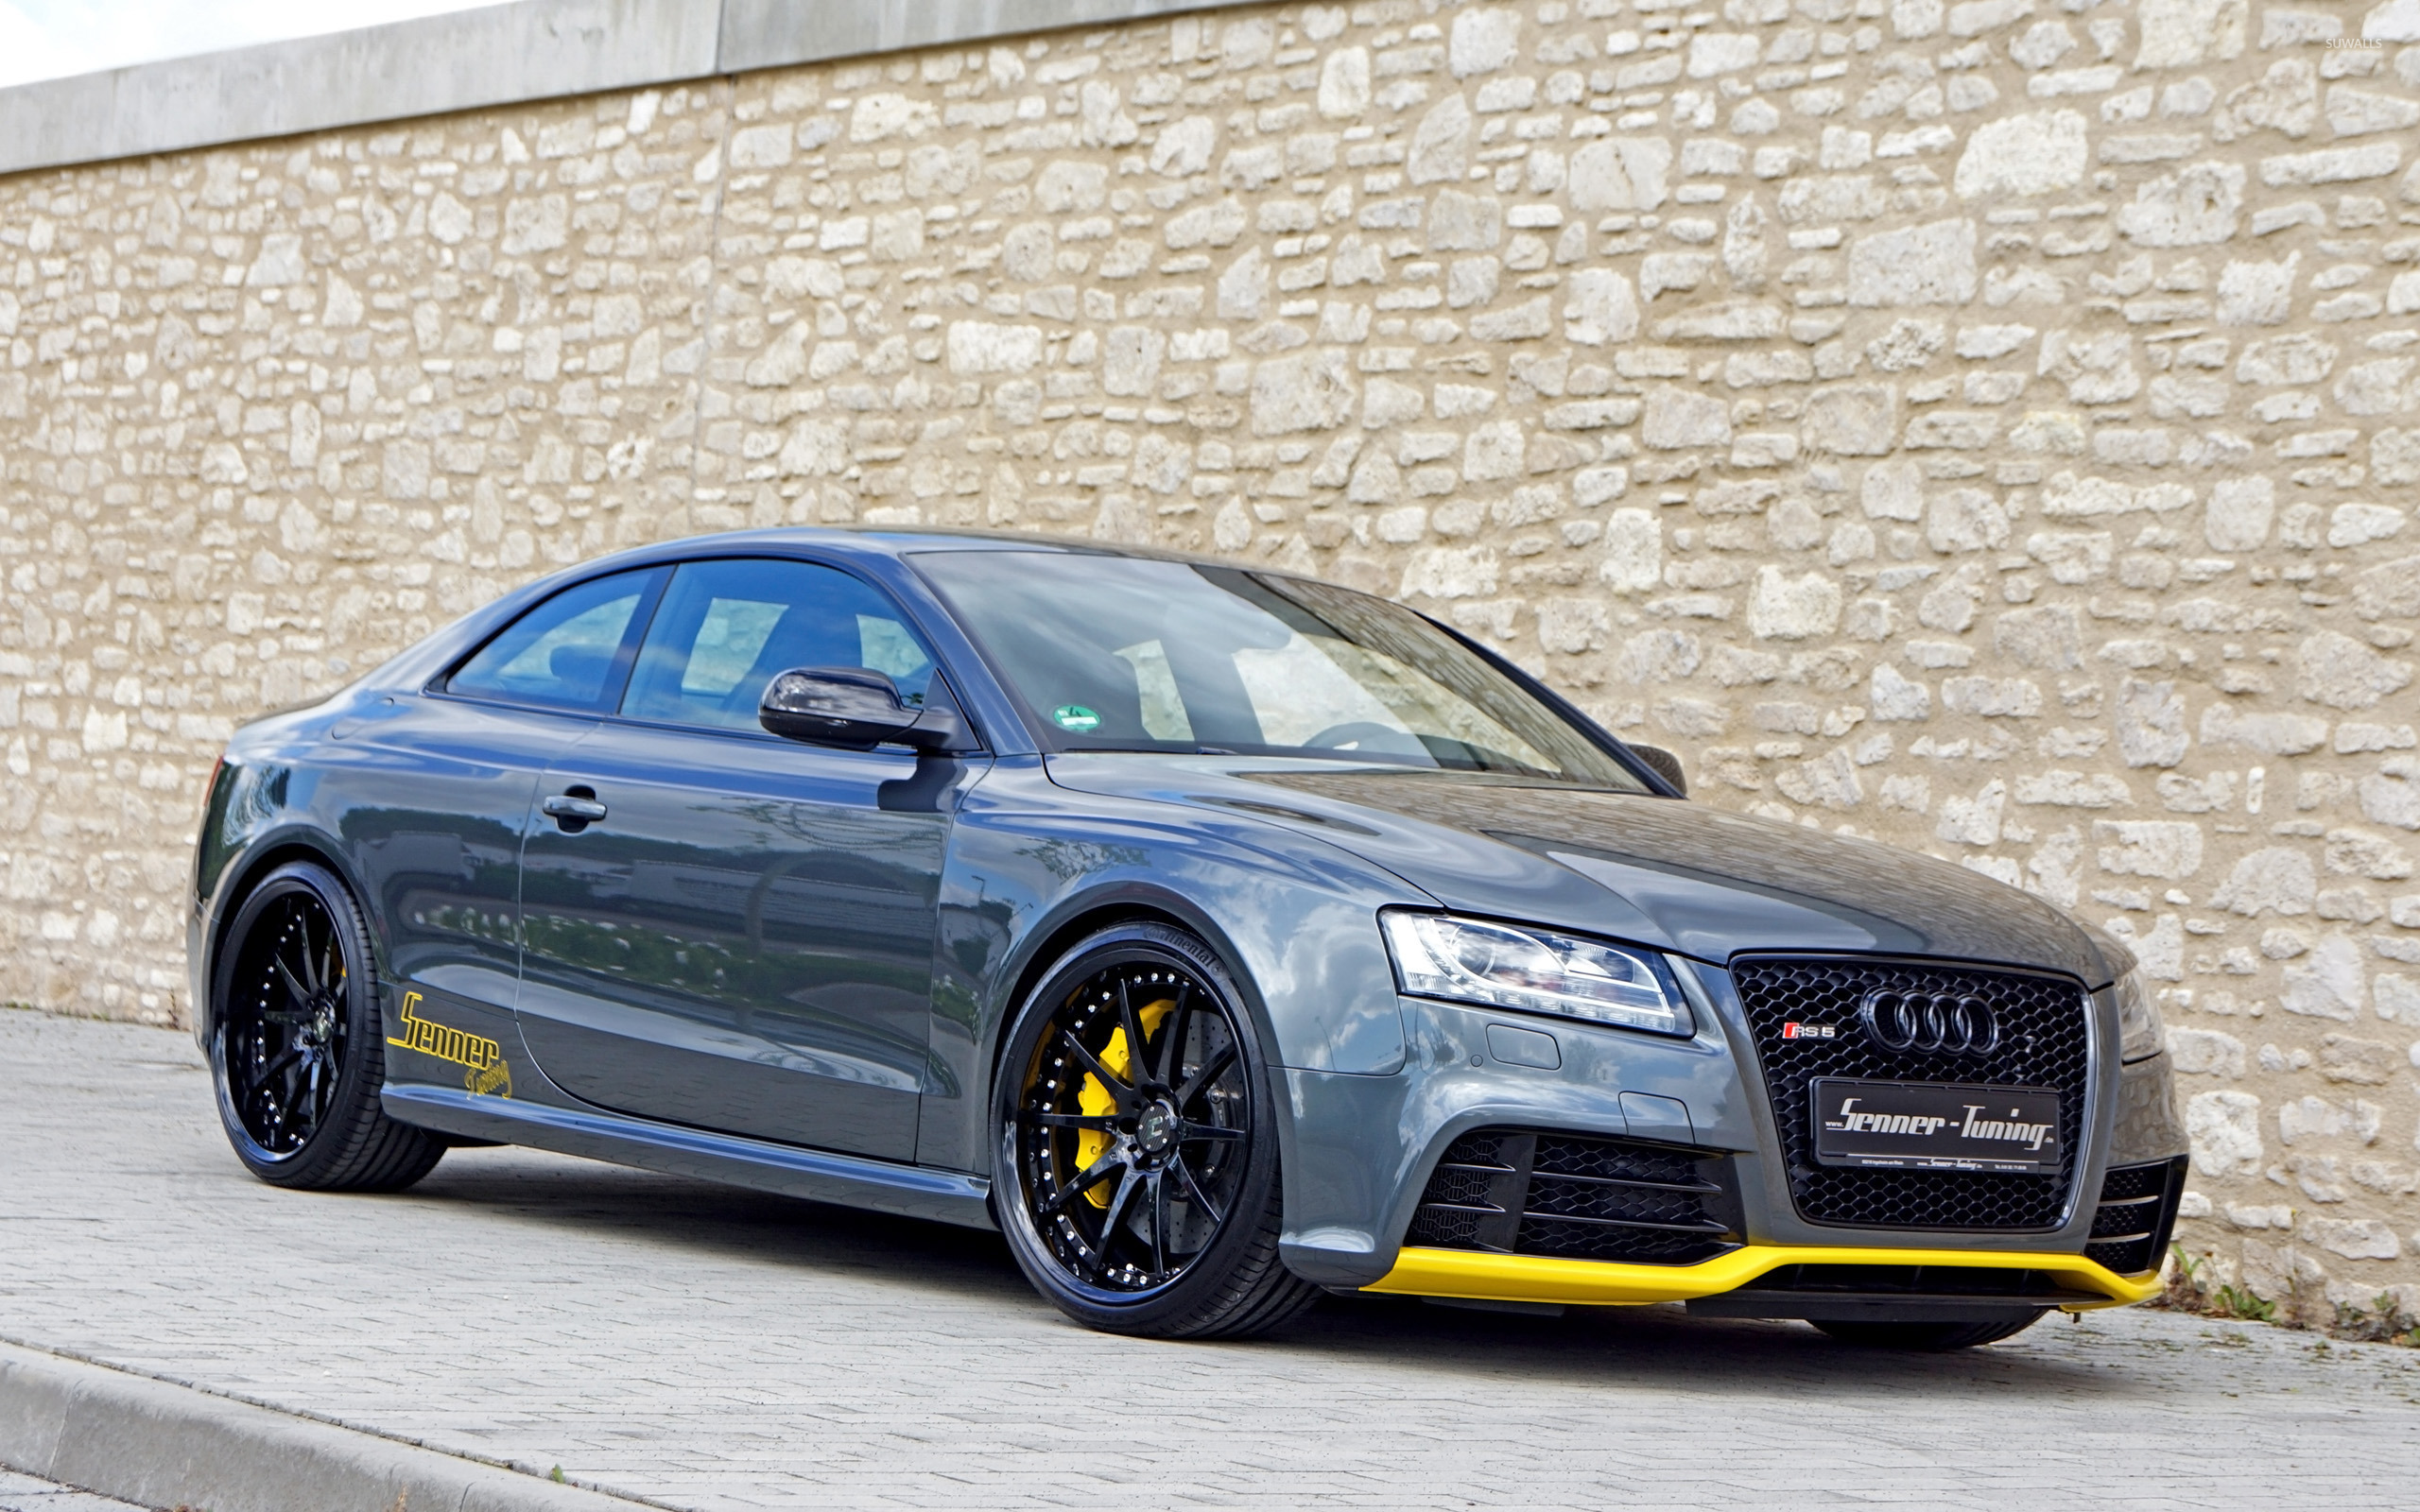 2014 Senner Tuning Audi Rs5 Coupe Wallpaper Car Wallpapers 40364